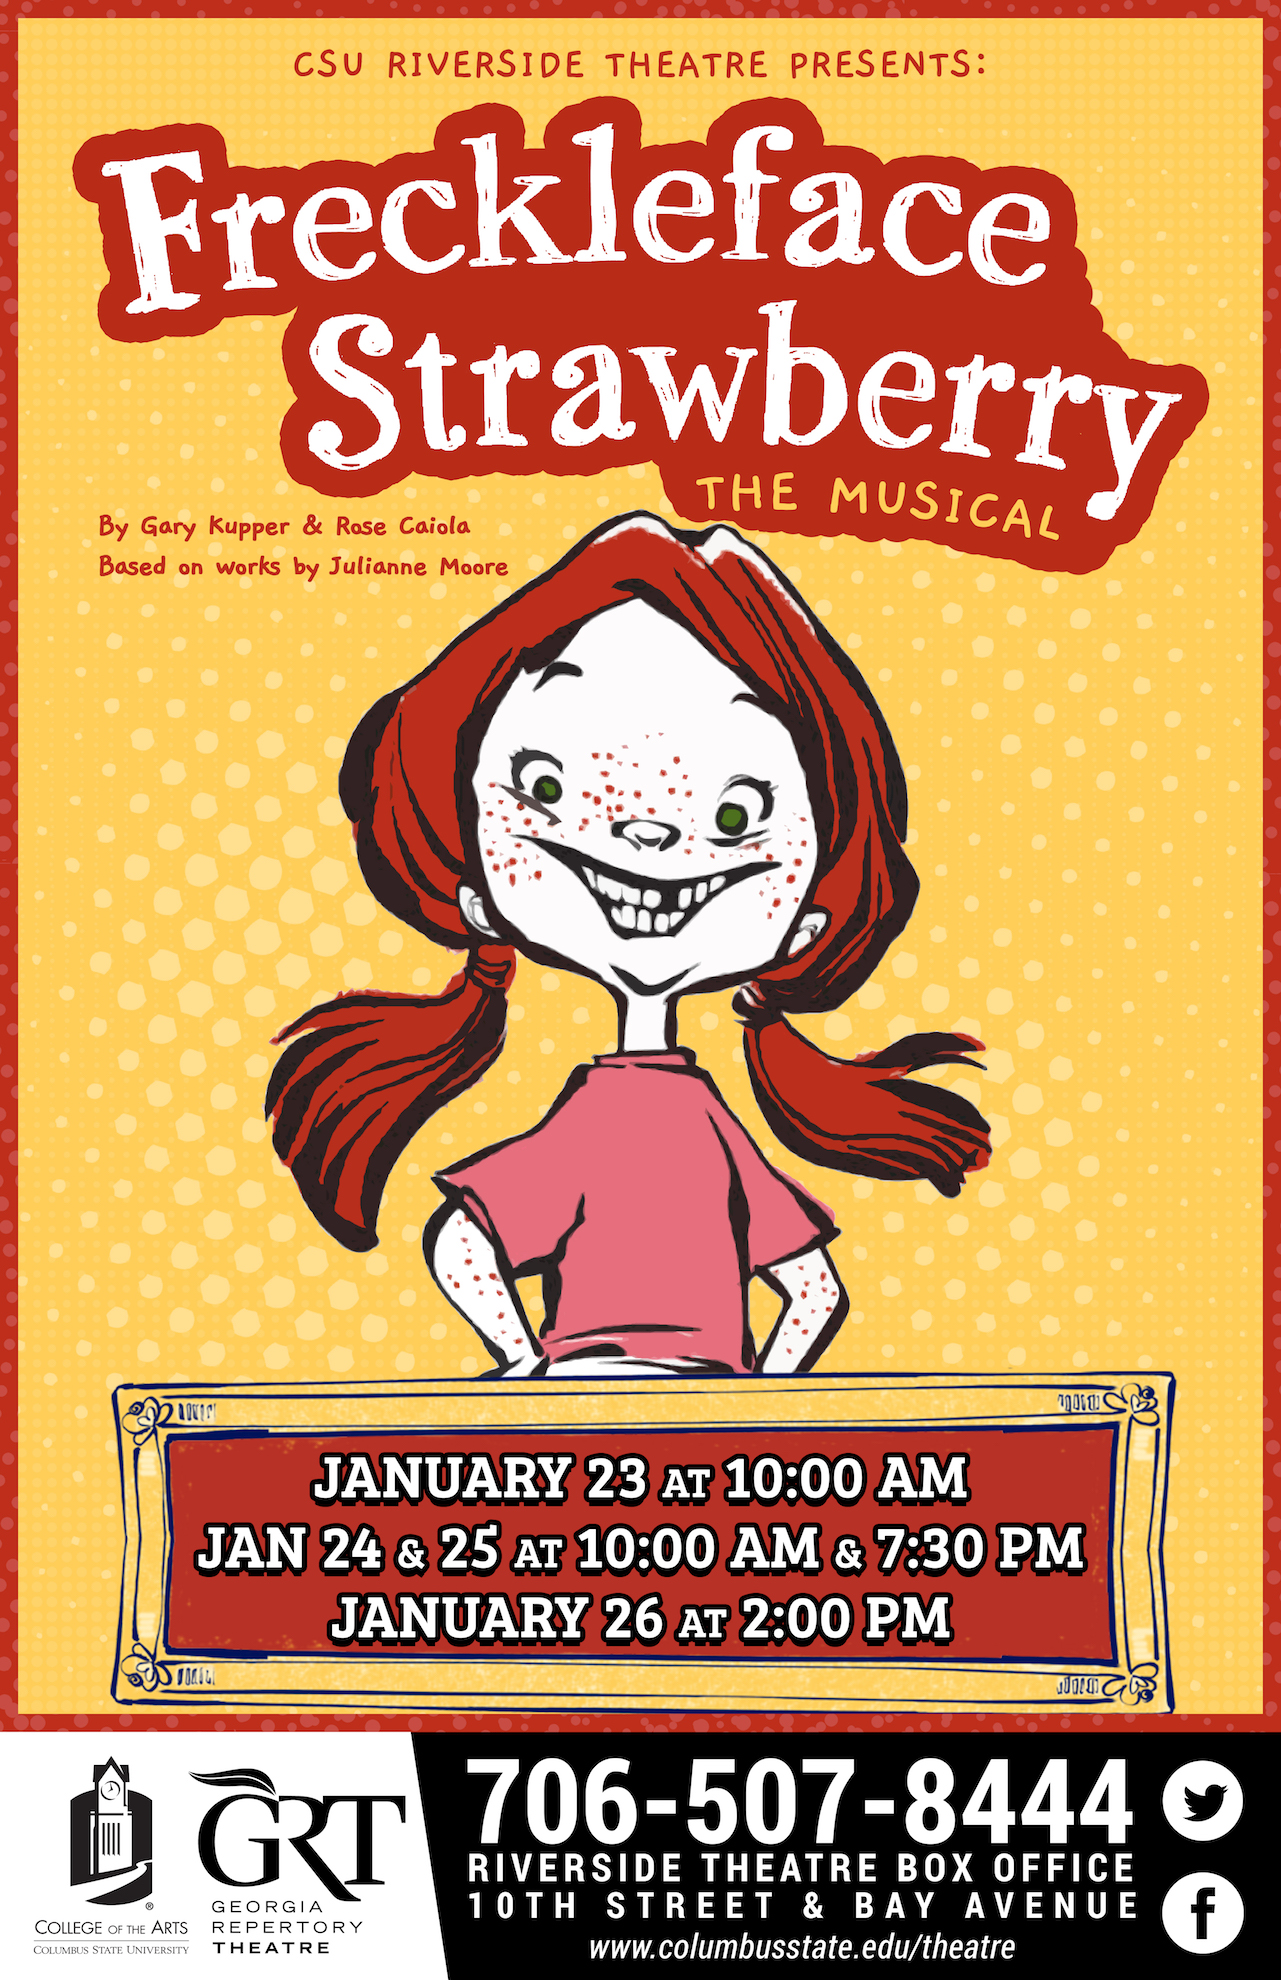 CSU Theatre: Freckleface Strawberry!